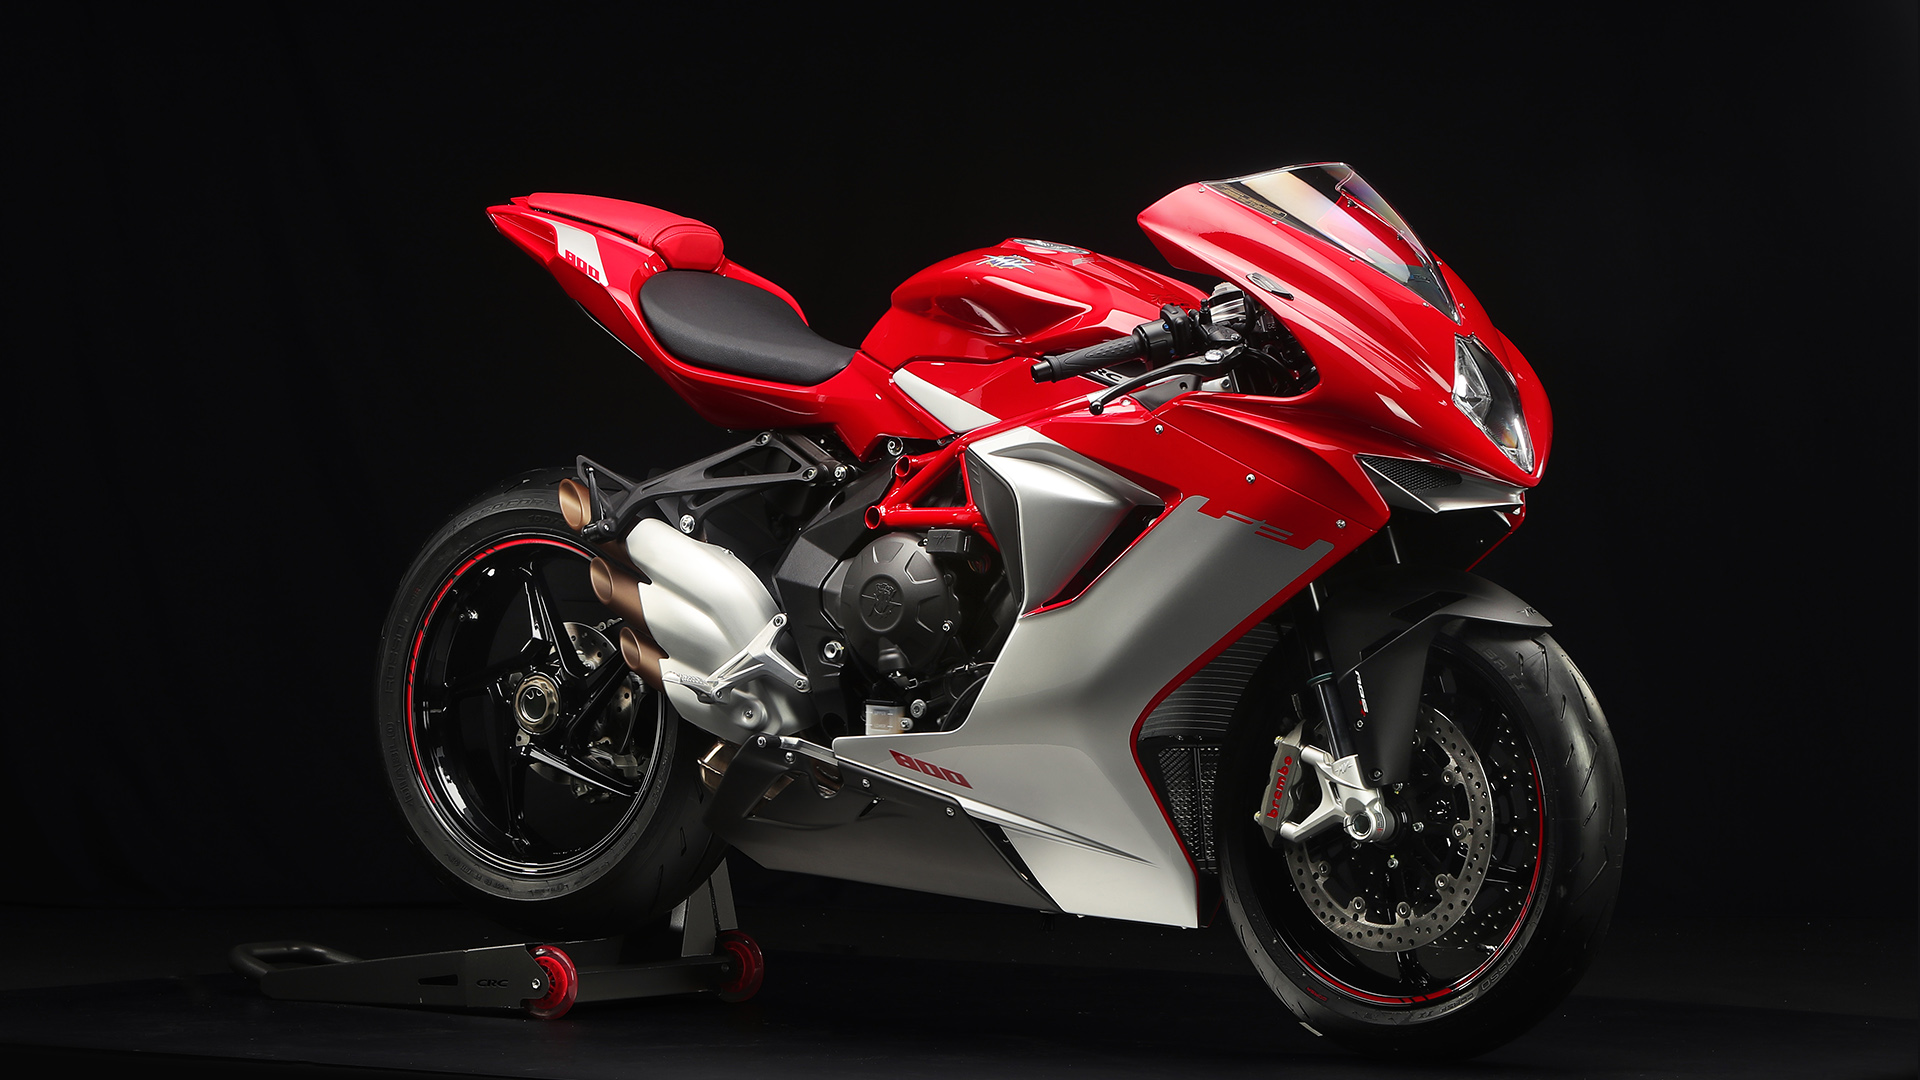 _sites_default_files_bikes_57_f3-800-3-4-ant-red